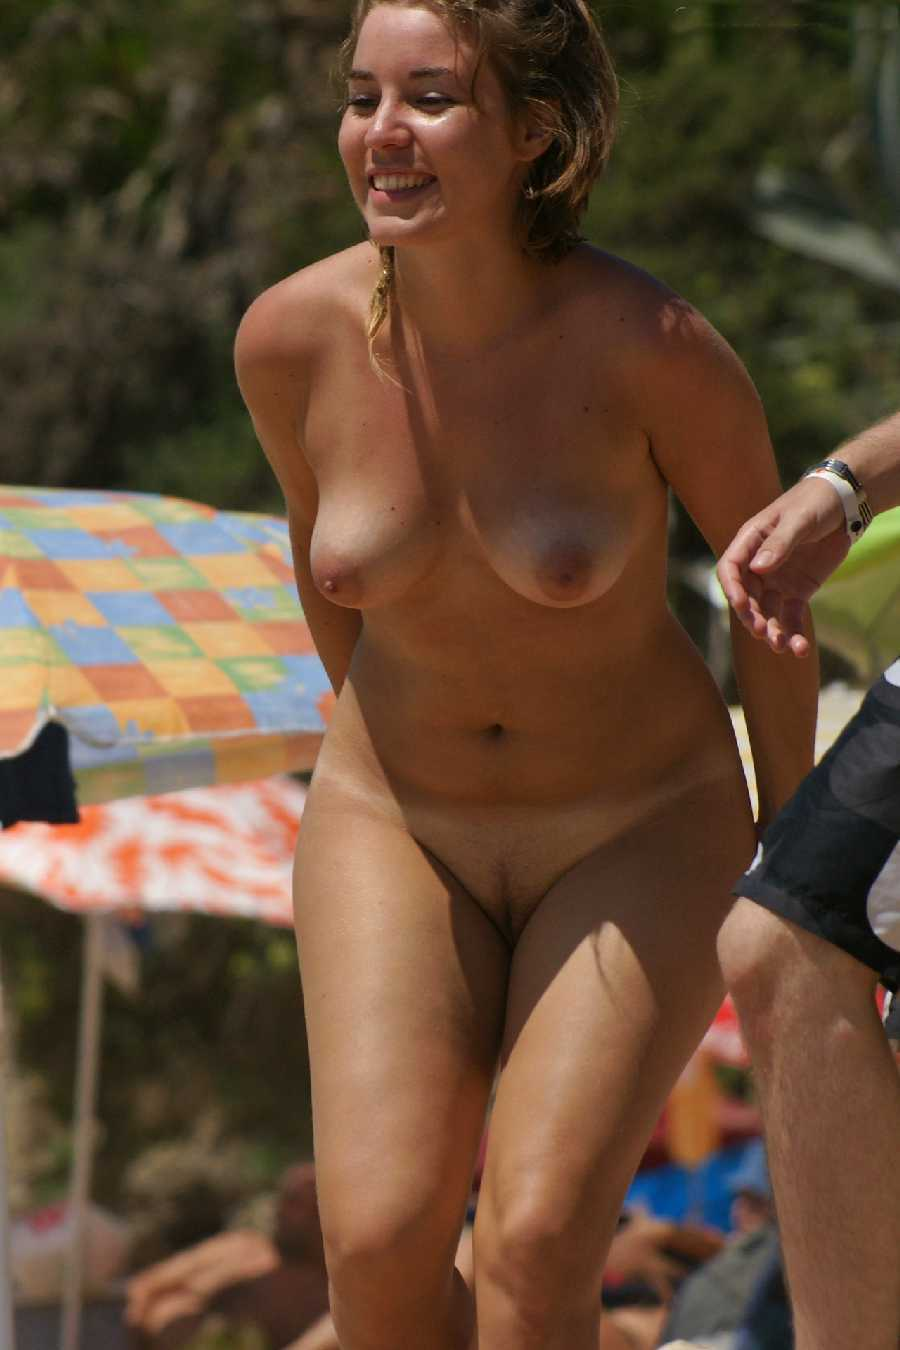 Video of wife nude on beach